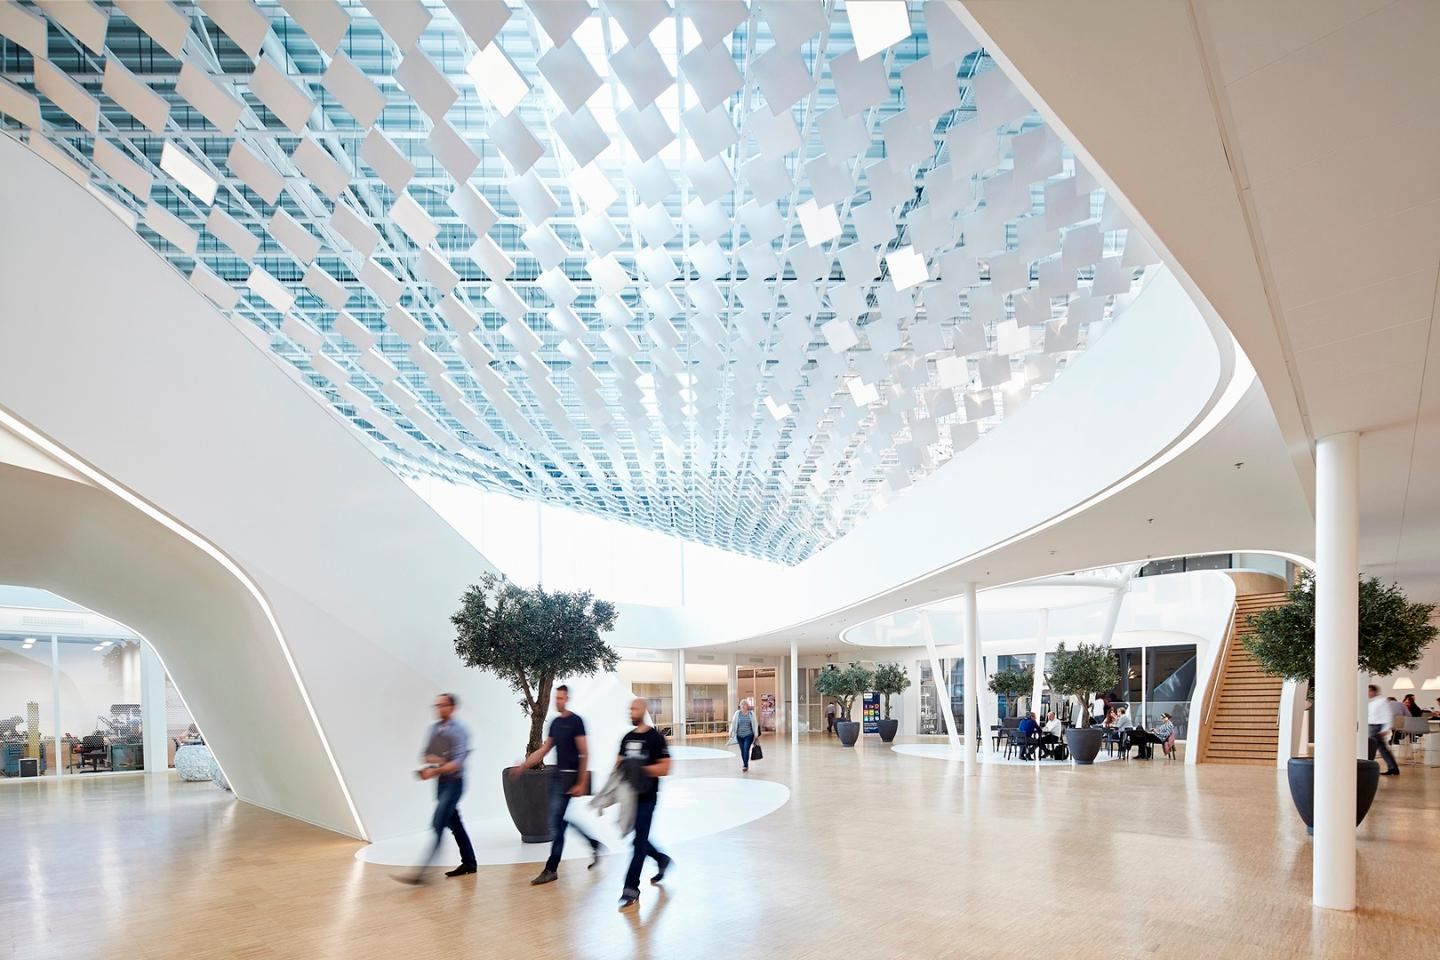 The artificial tree is installed in the atrium of the Philips Lighting HQ in Eindhoven, Netherlands